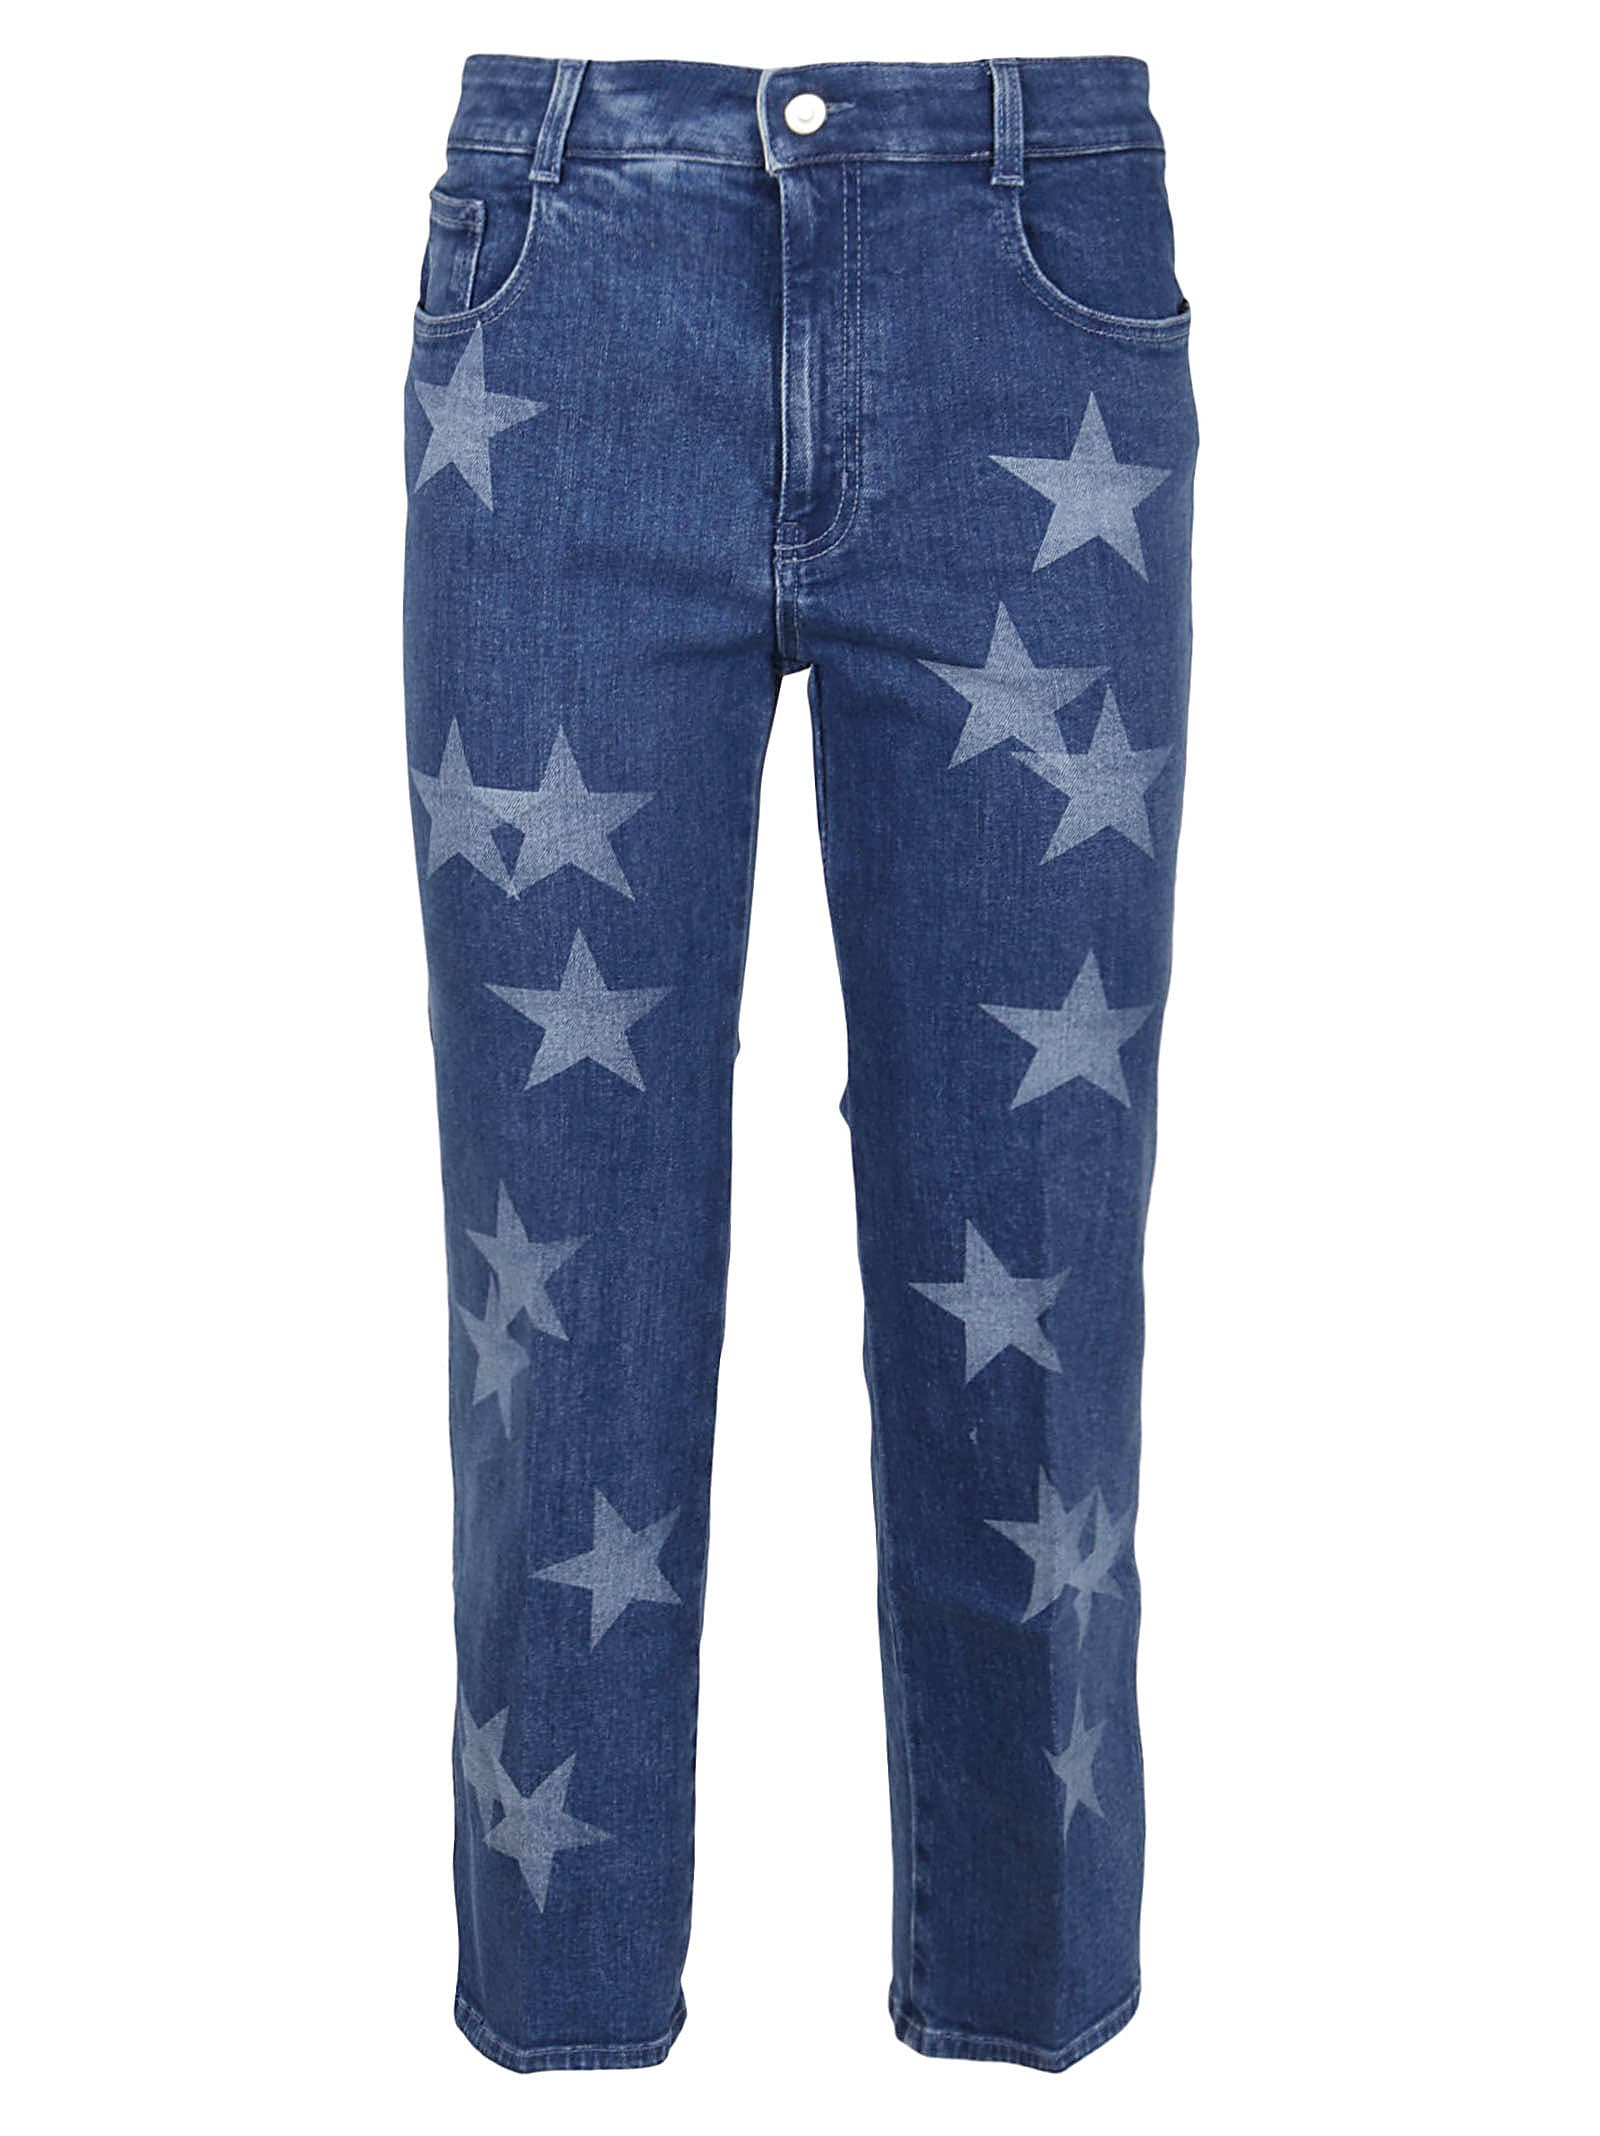 Stella Mccartney NEW CROP JEAN NEW STARS ON BLUE SKY